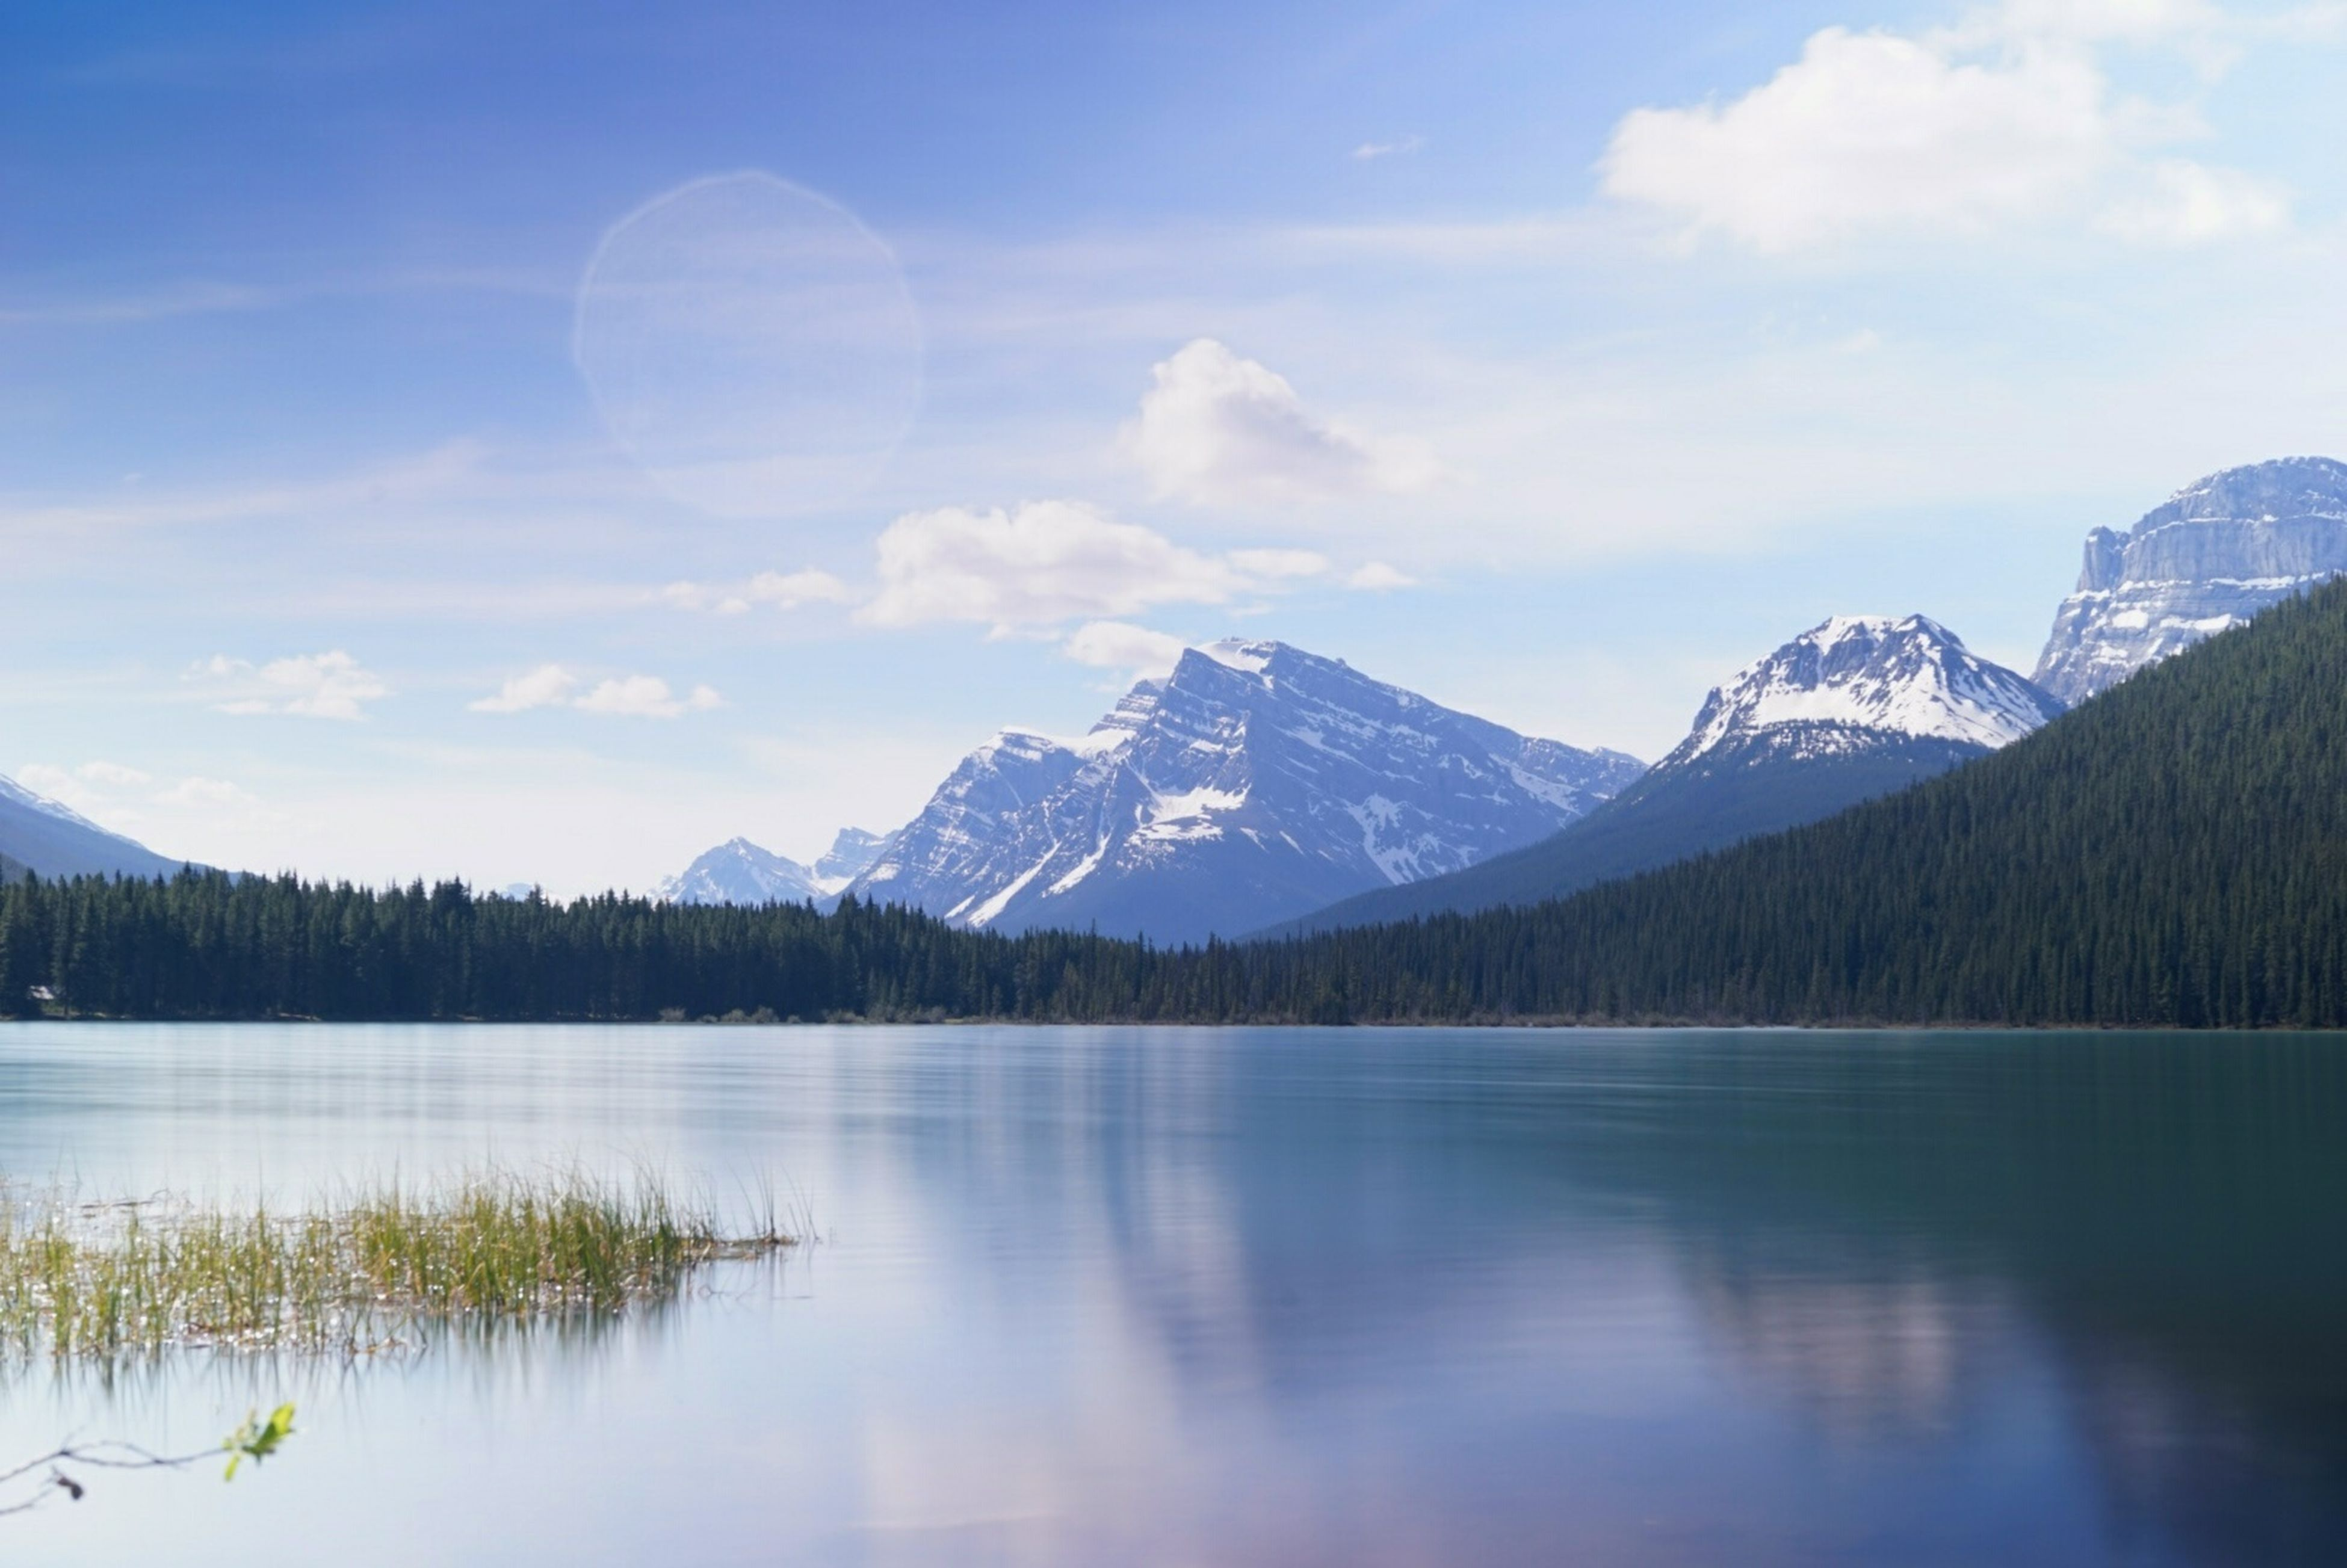 mountain, mountain range, tranquil scene, lake, tranquility, scenics, water, reflection, beauty in nature, sky, waterfront, nature, snowcapped mountain, winter, snow, idyllic, cold temperature, cloud - sky, majestic, non-urban scene